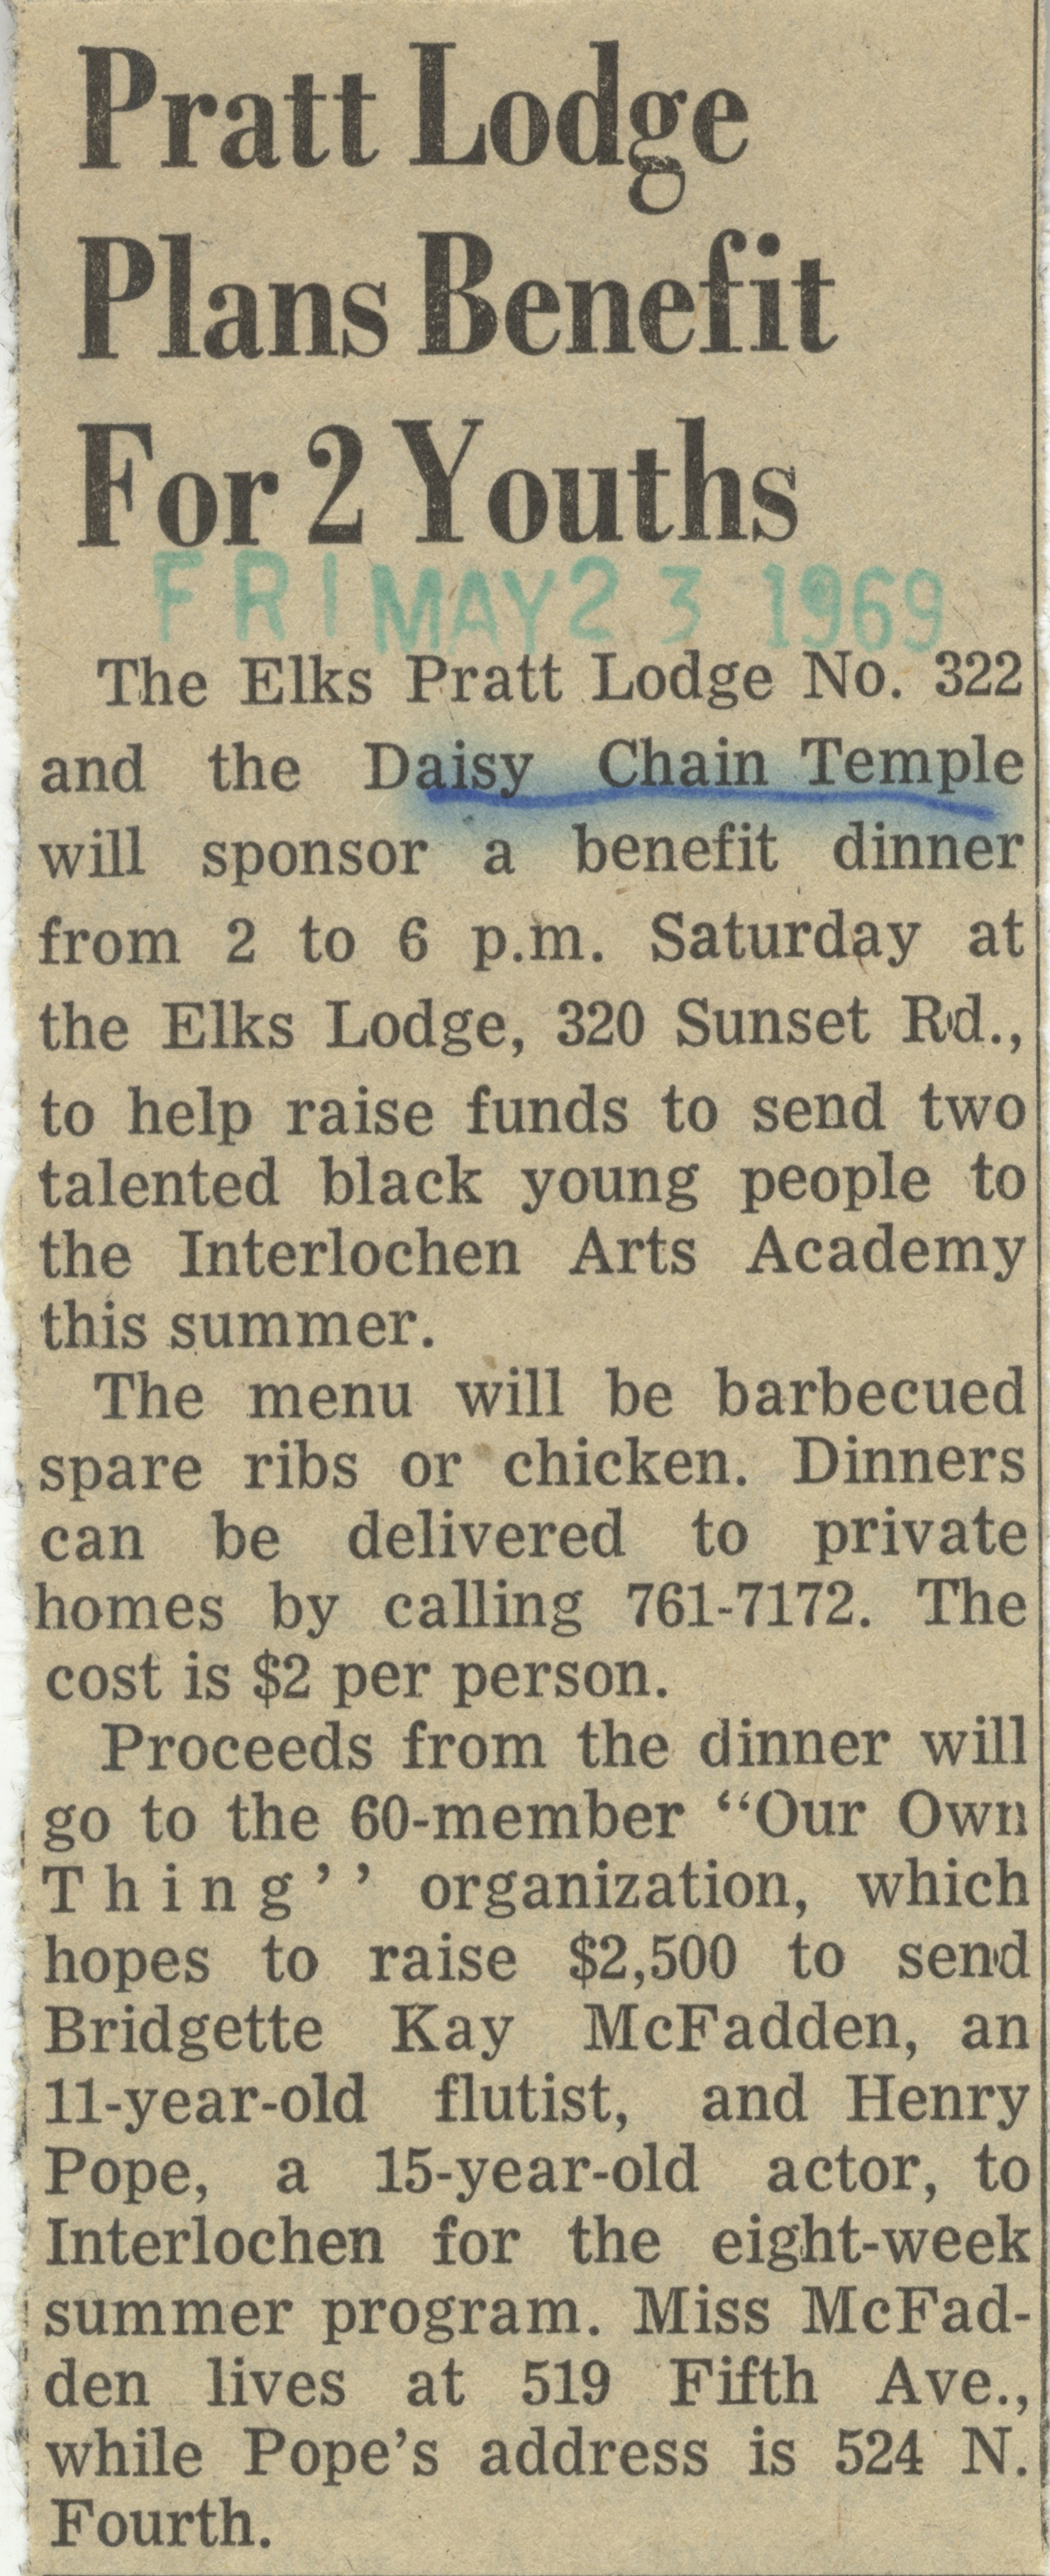 Pratt Lodge Plans Benefit For 2 Youths image